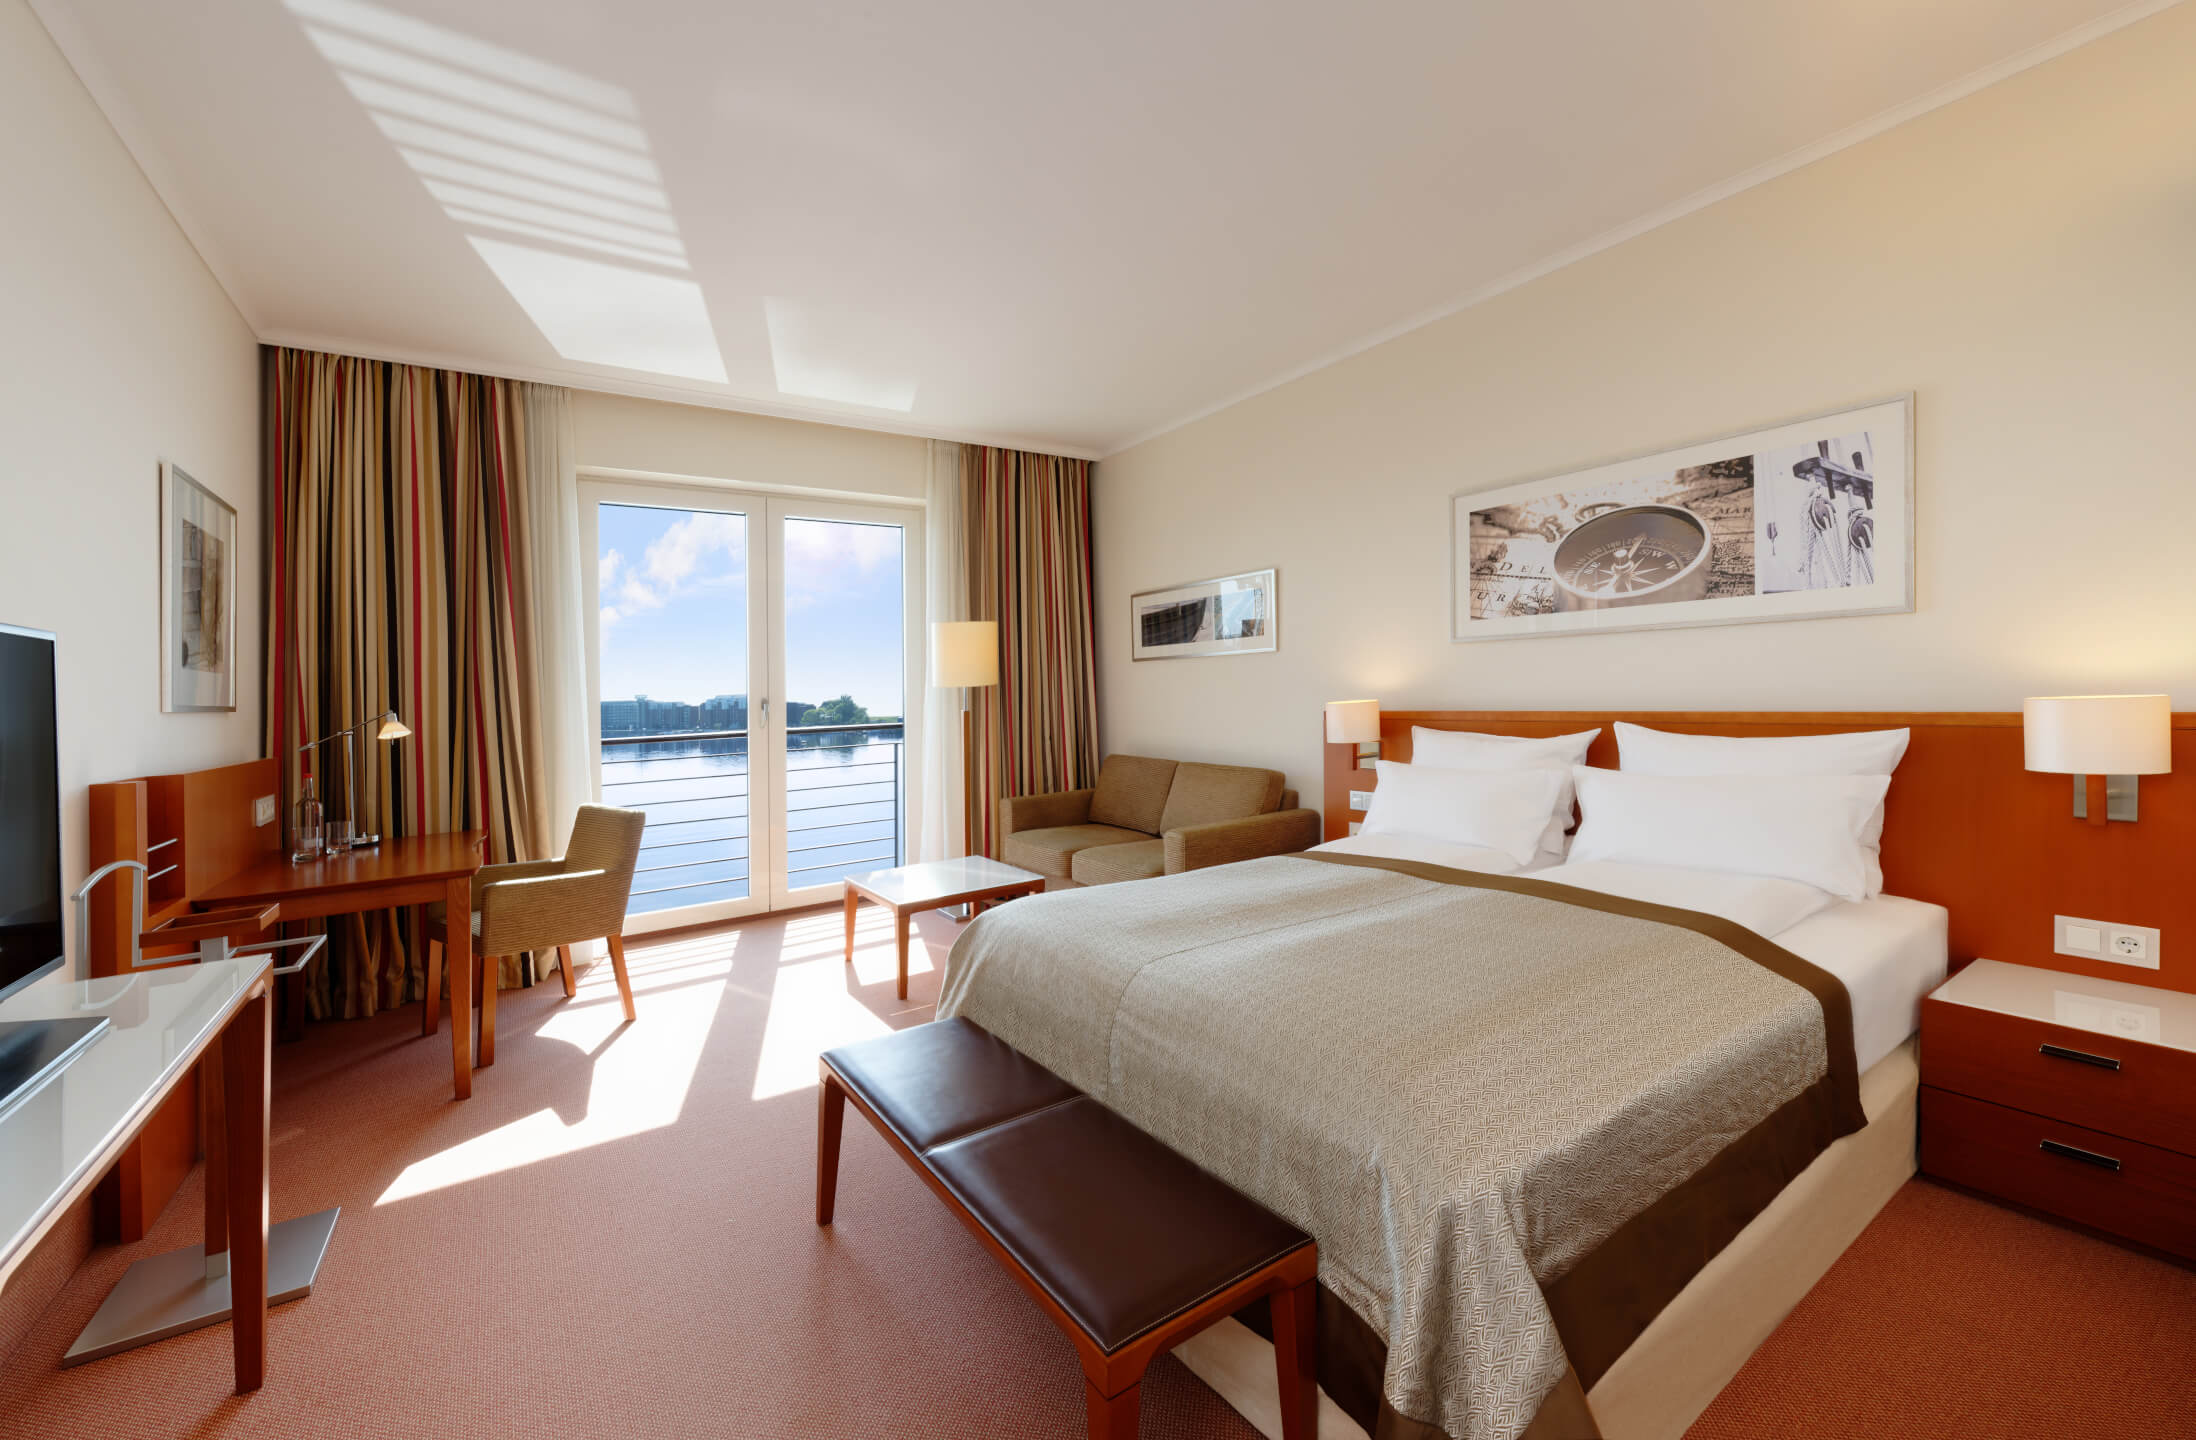 Superior Room with double bed and harbour view in the ATLANTIC Hotel Wilhelmshaven